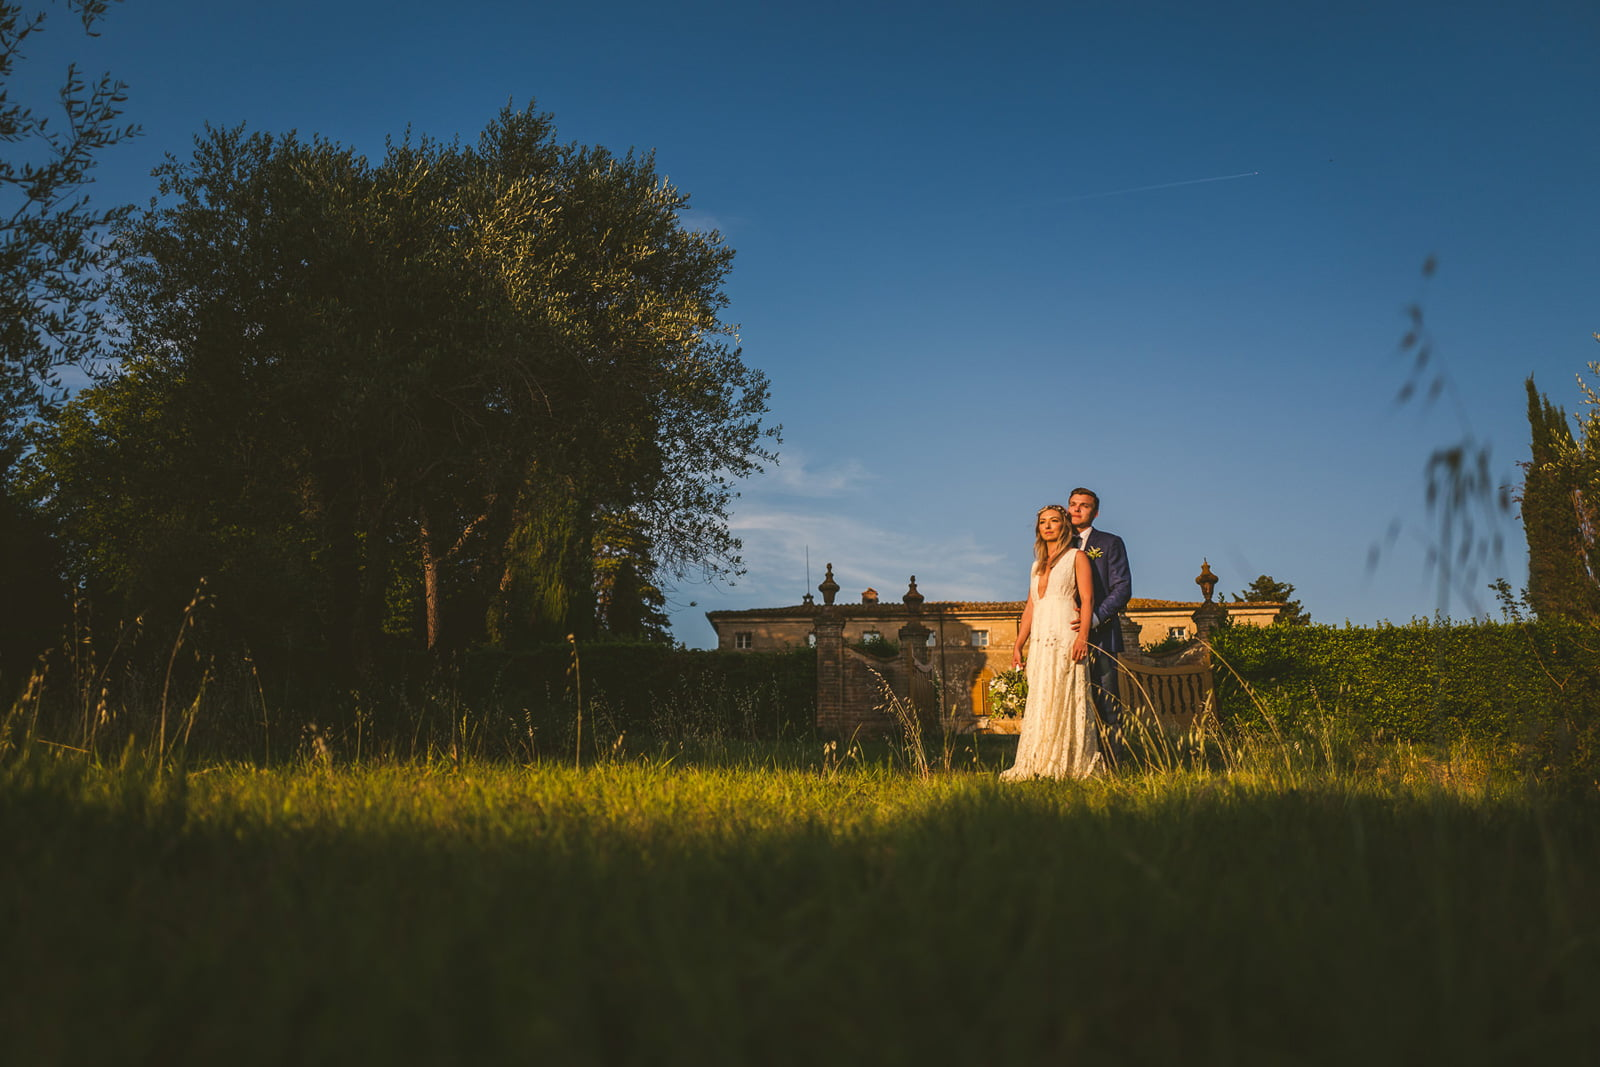 A+L Wedding at Montechiaro, Siena by Federico Pannacci 76